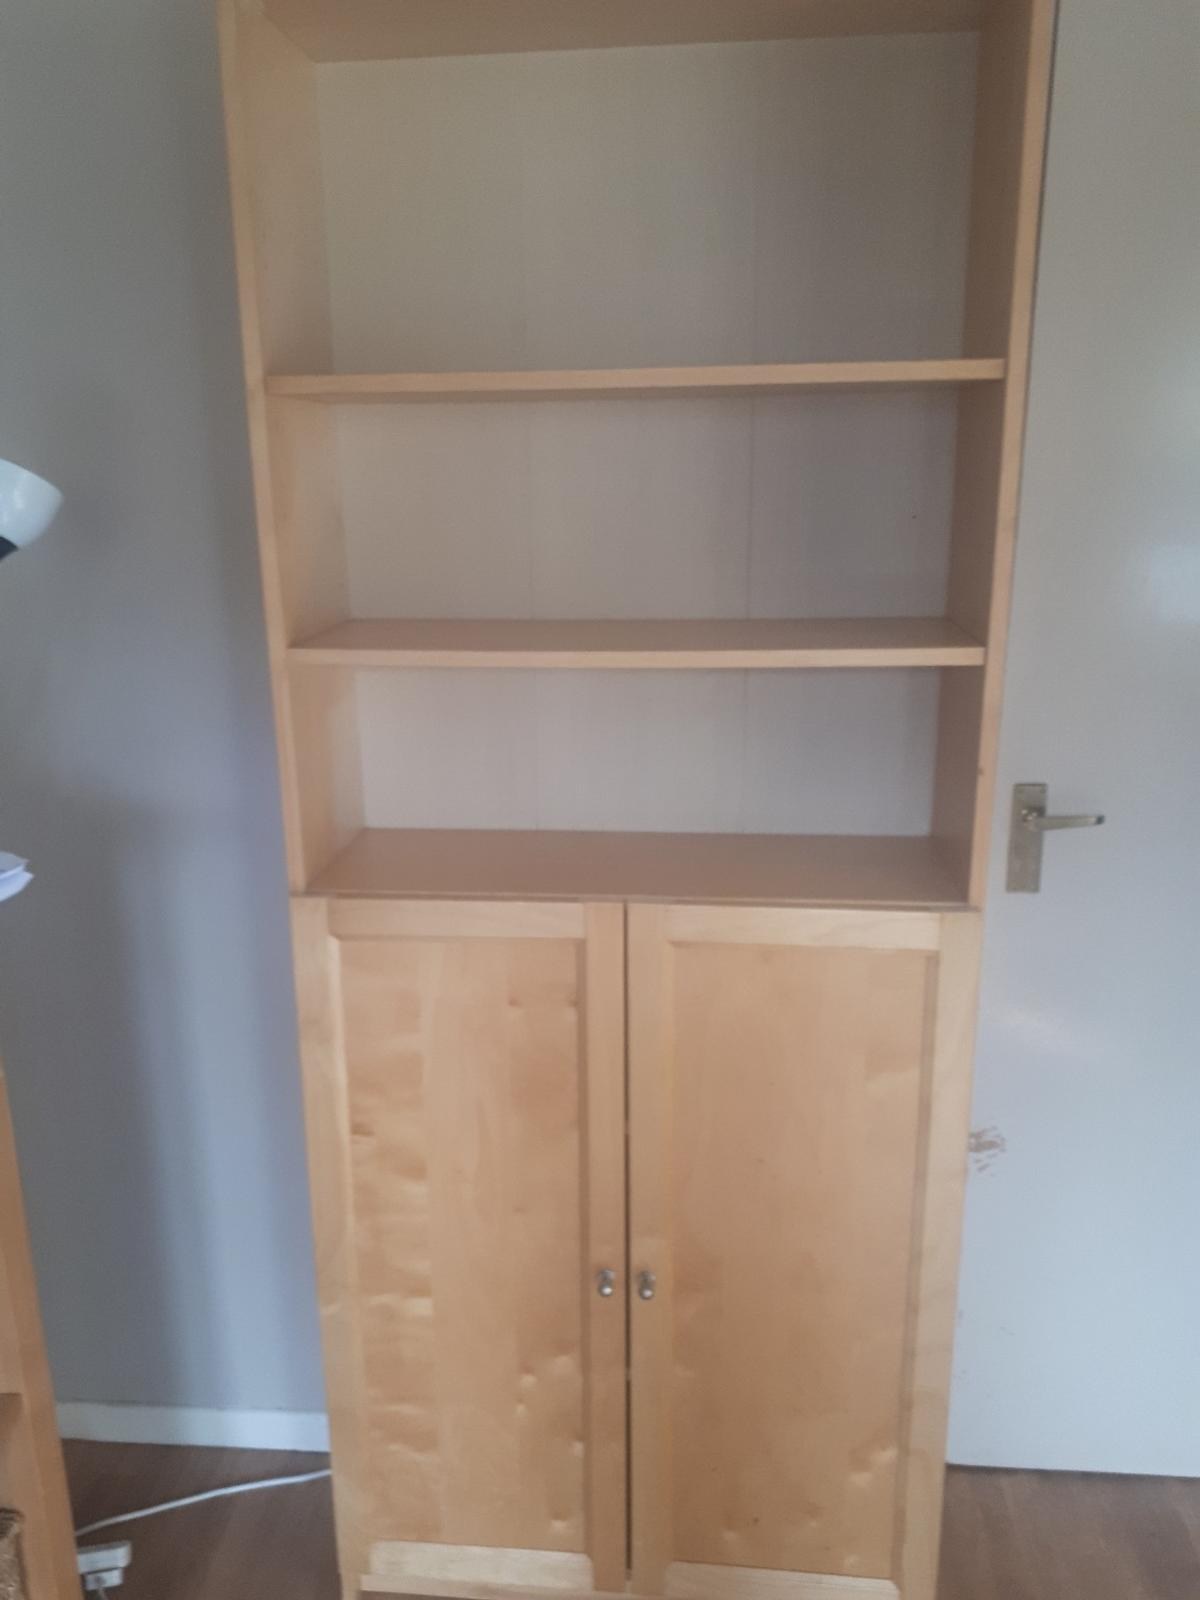 Billy Bookcase With Doors In Wolverhampton For 60 00 For